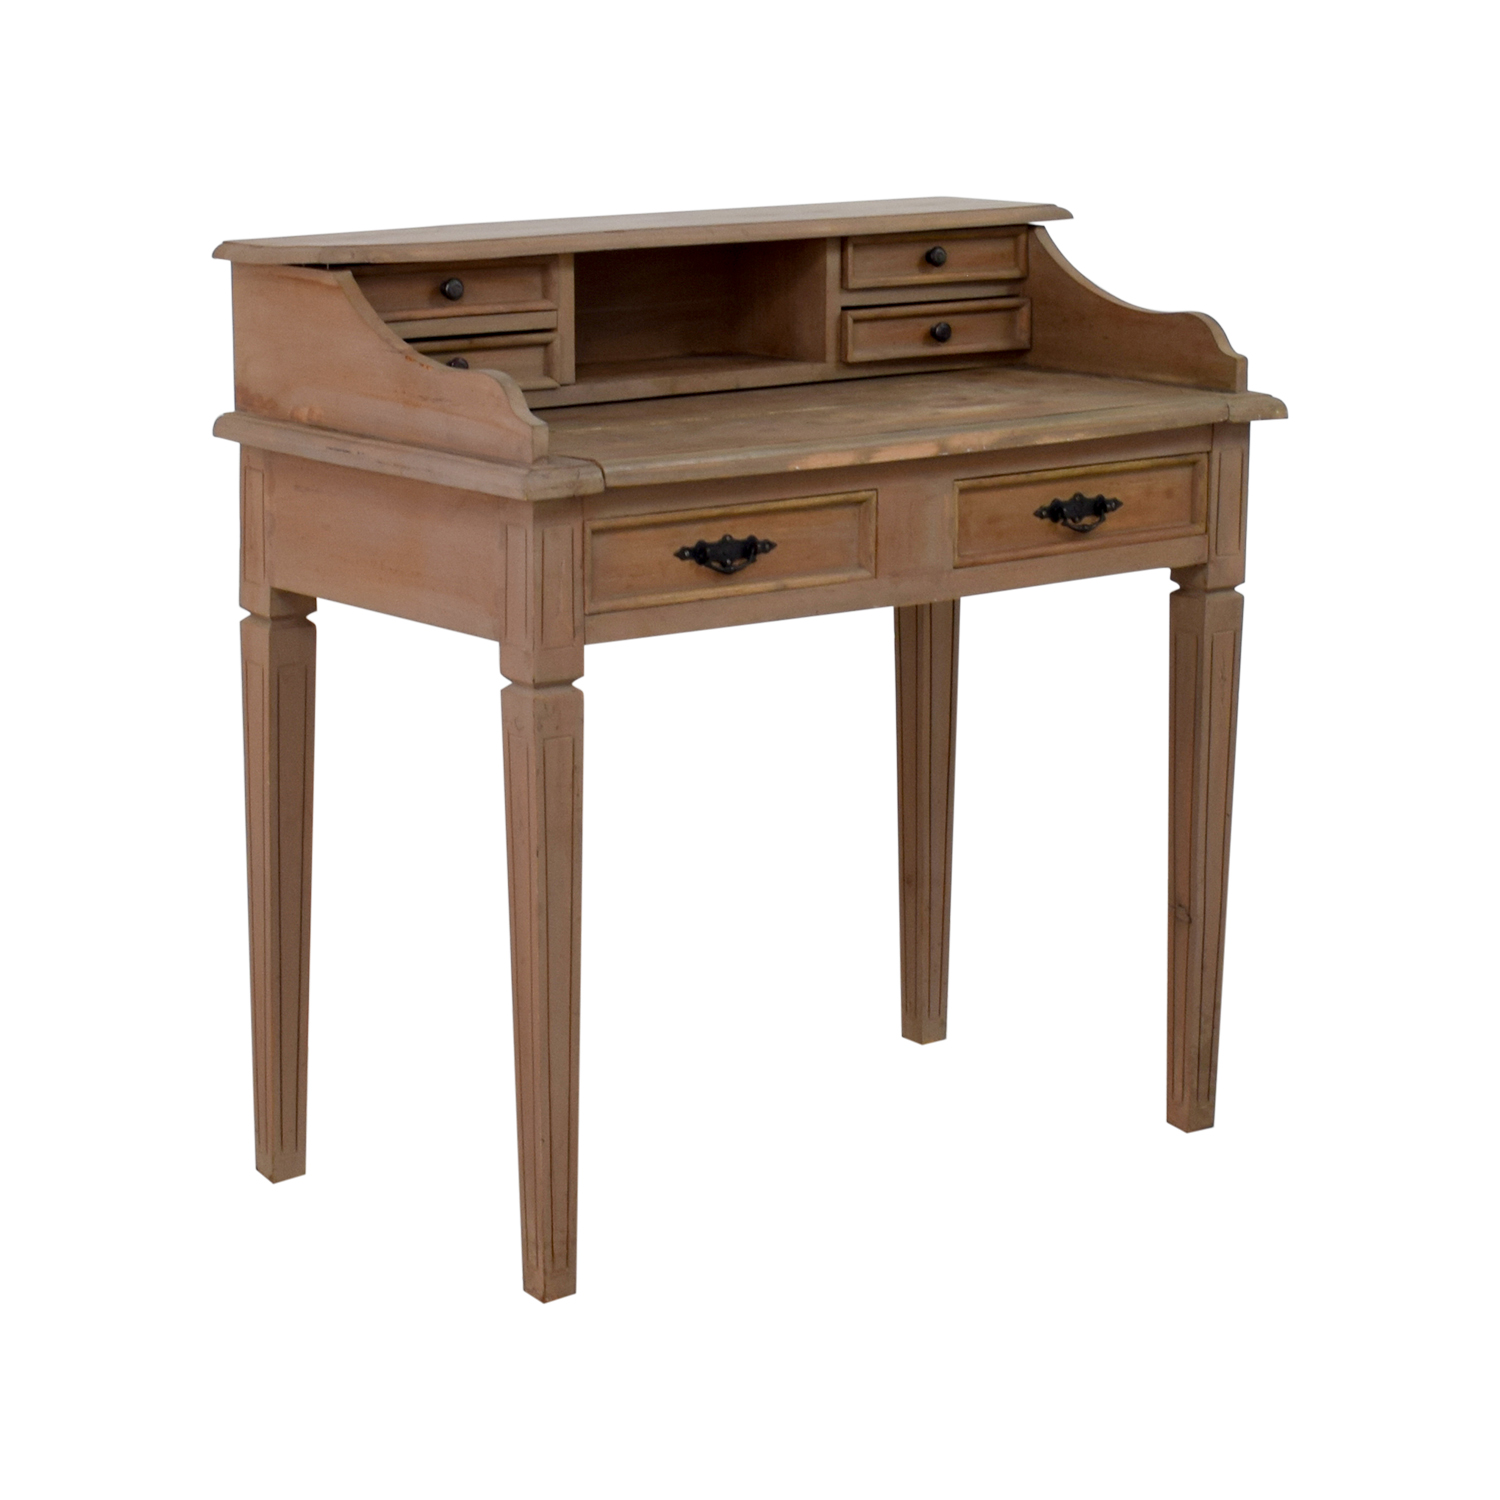 67 off wooden desk with small hutch tables. Black Bedroom Furniture Sets. Home Design Ideas